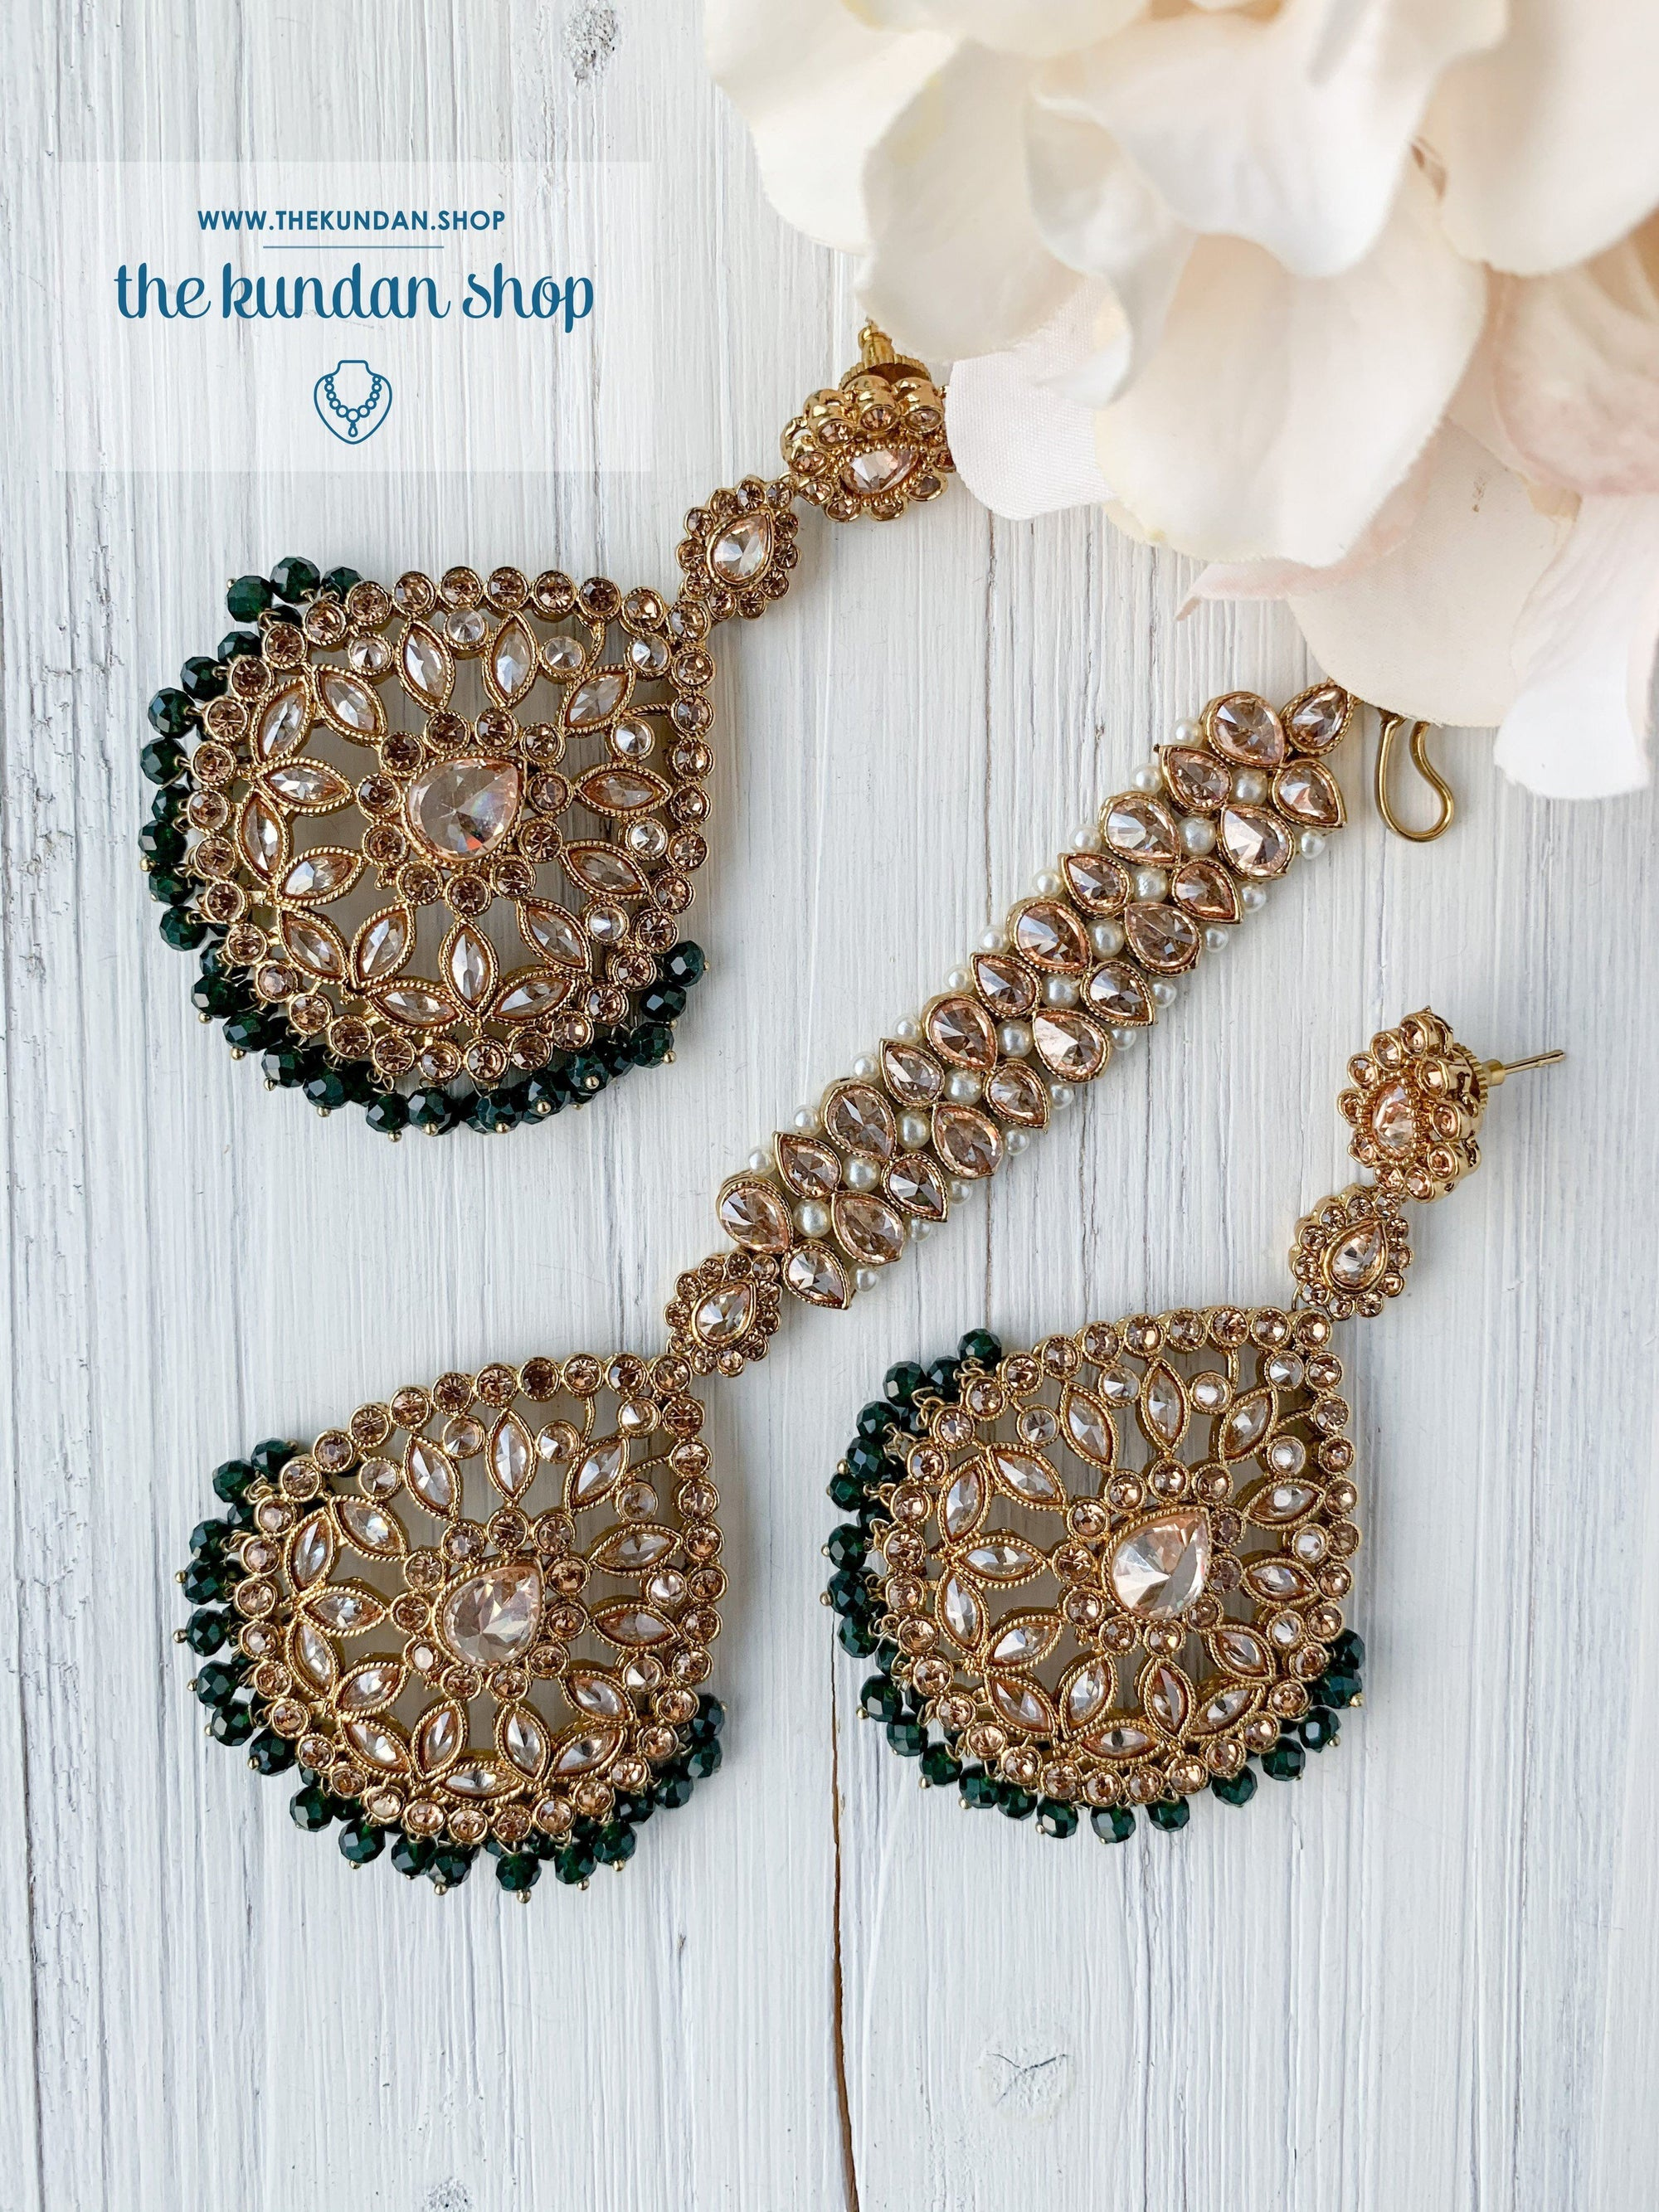 Infinite Love in Dark Green Earrings + Tikka THE KUNDAN SHOP